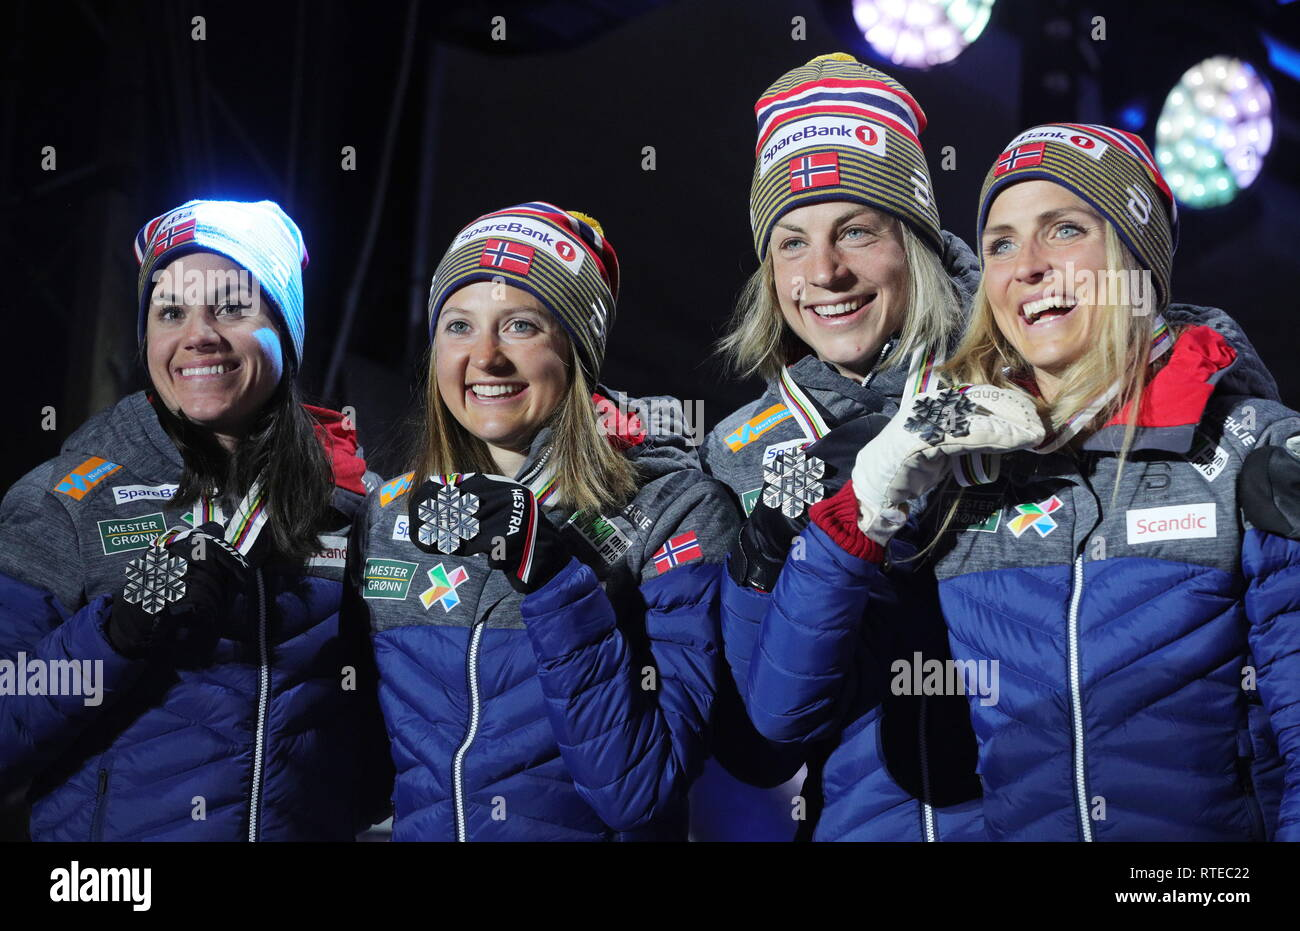 Seefeld, Austria. 28th Feb, 2019. TYROL, AUSTRIA - FEBRUARY 28, 2019: Silver medallists Heidi Weng, Ingvild Flugstad Oestberg, Astrid Uhrenholdt Jacobsen, and Therese Johaug of Norway (L-R) show their medals during the medal ceremony for women's 4 x 5 km relay classic/free at the 2019 FIS Nordic World Ski Championships in Seefeld. Sergei Bobylev/TASS Credit: ITAR-TASS News Agency/Alamy Live News - Stock Image